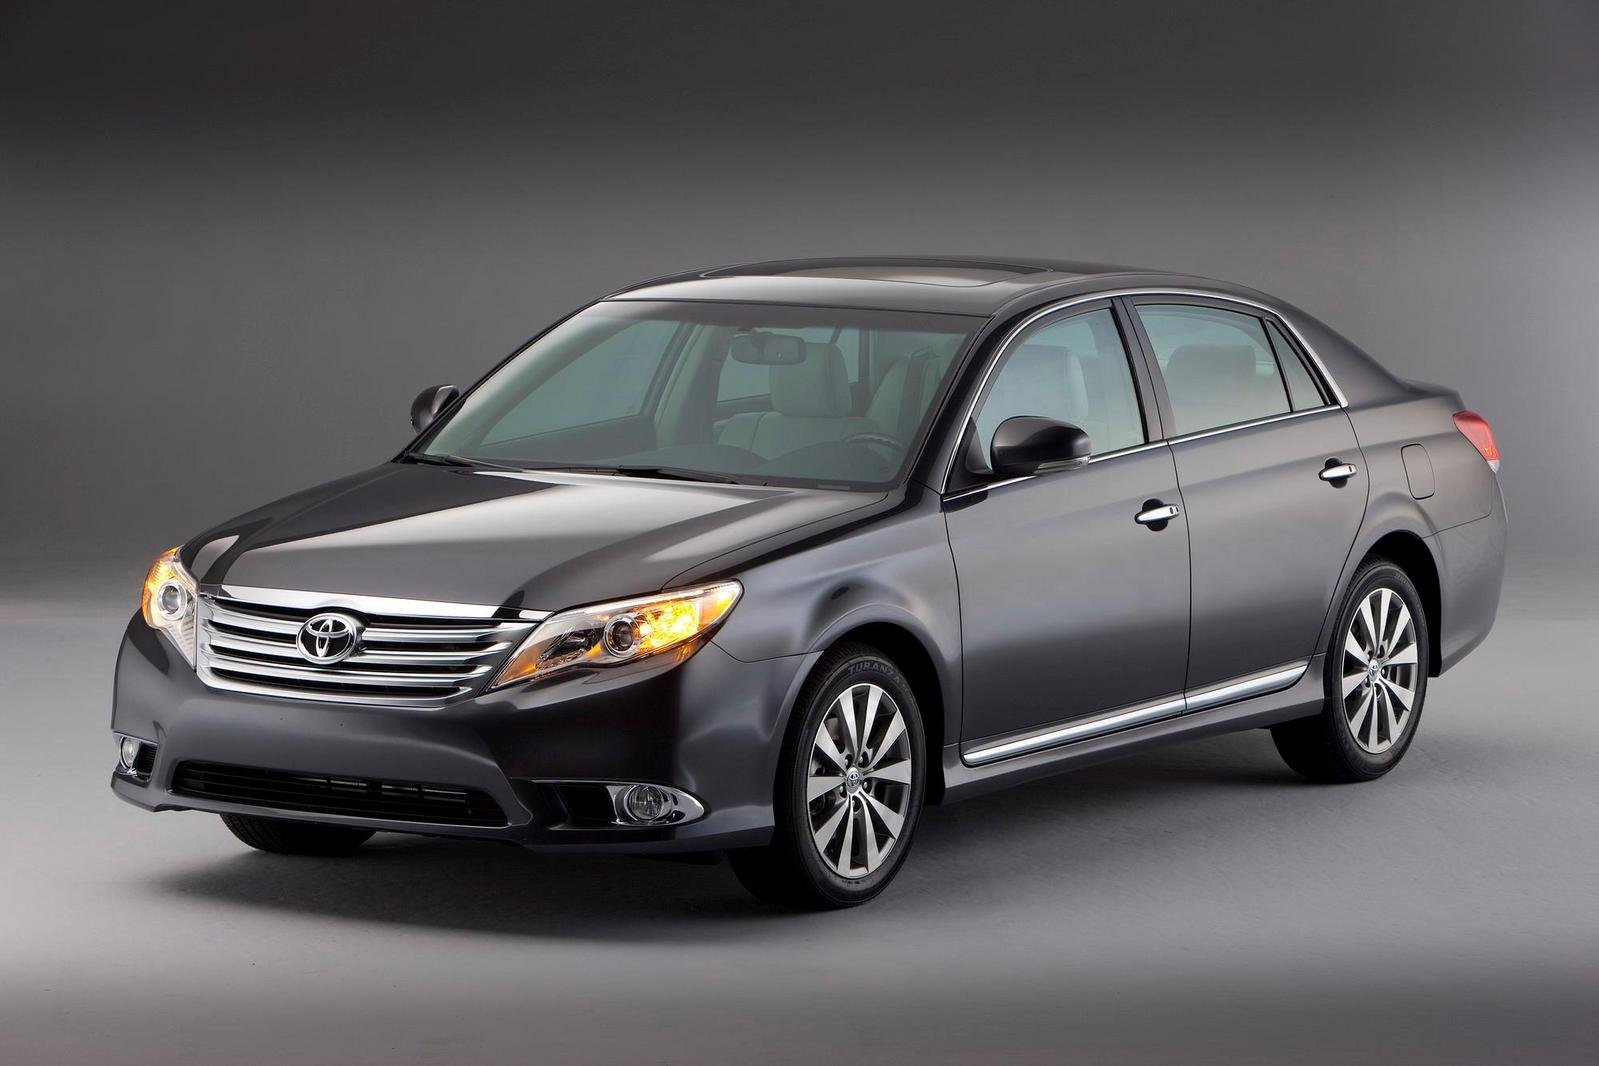 2011 toyota avalon review gallery top speed. Black Bedroom Furniture Sets. Home Design Ideas